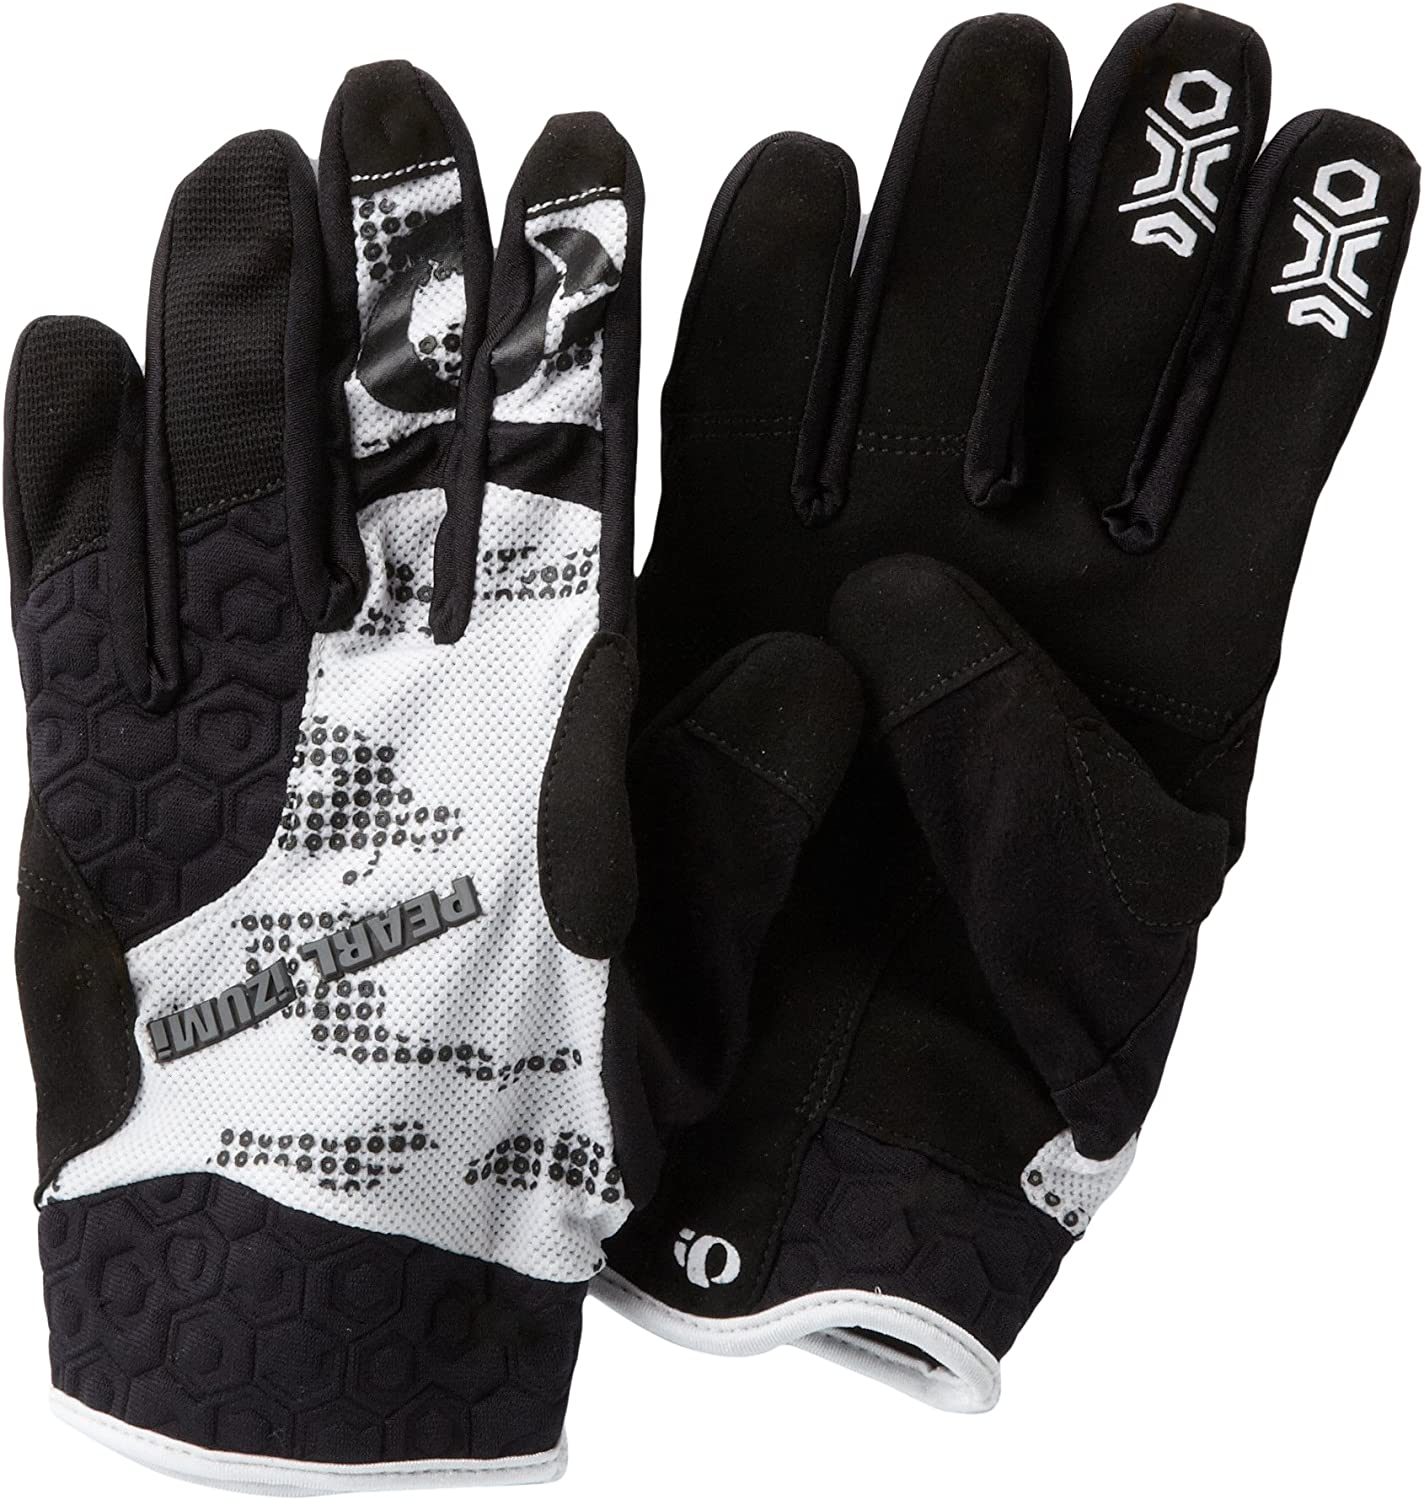 Medium Black//Gray Pearl Izumi Launch Cycling Gloves